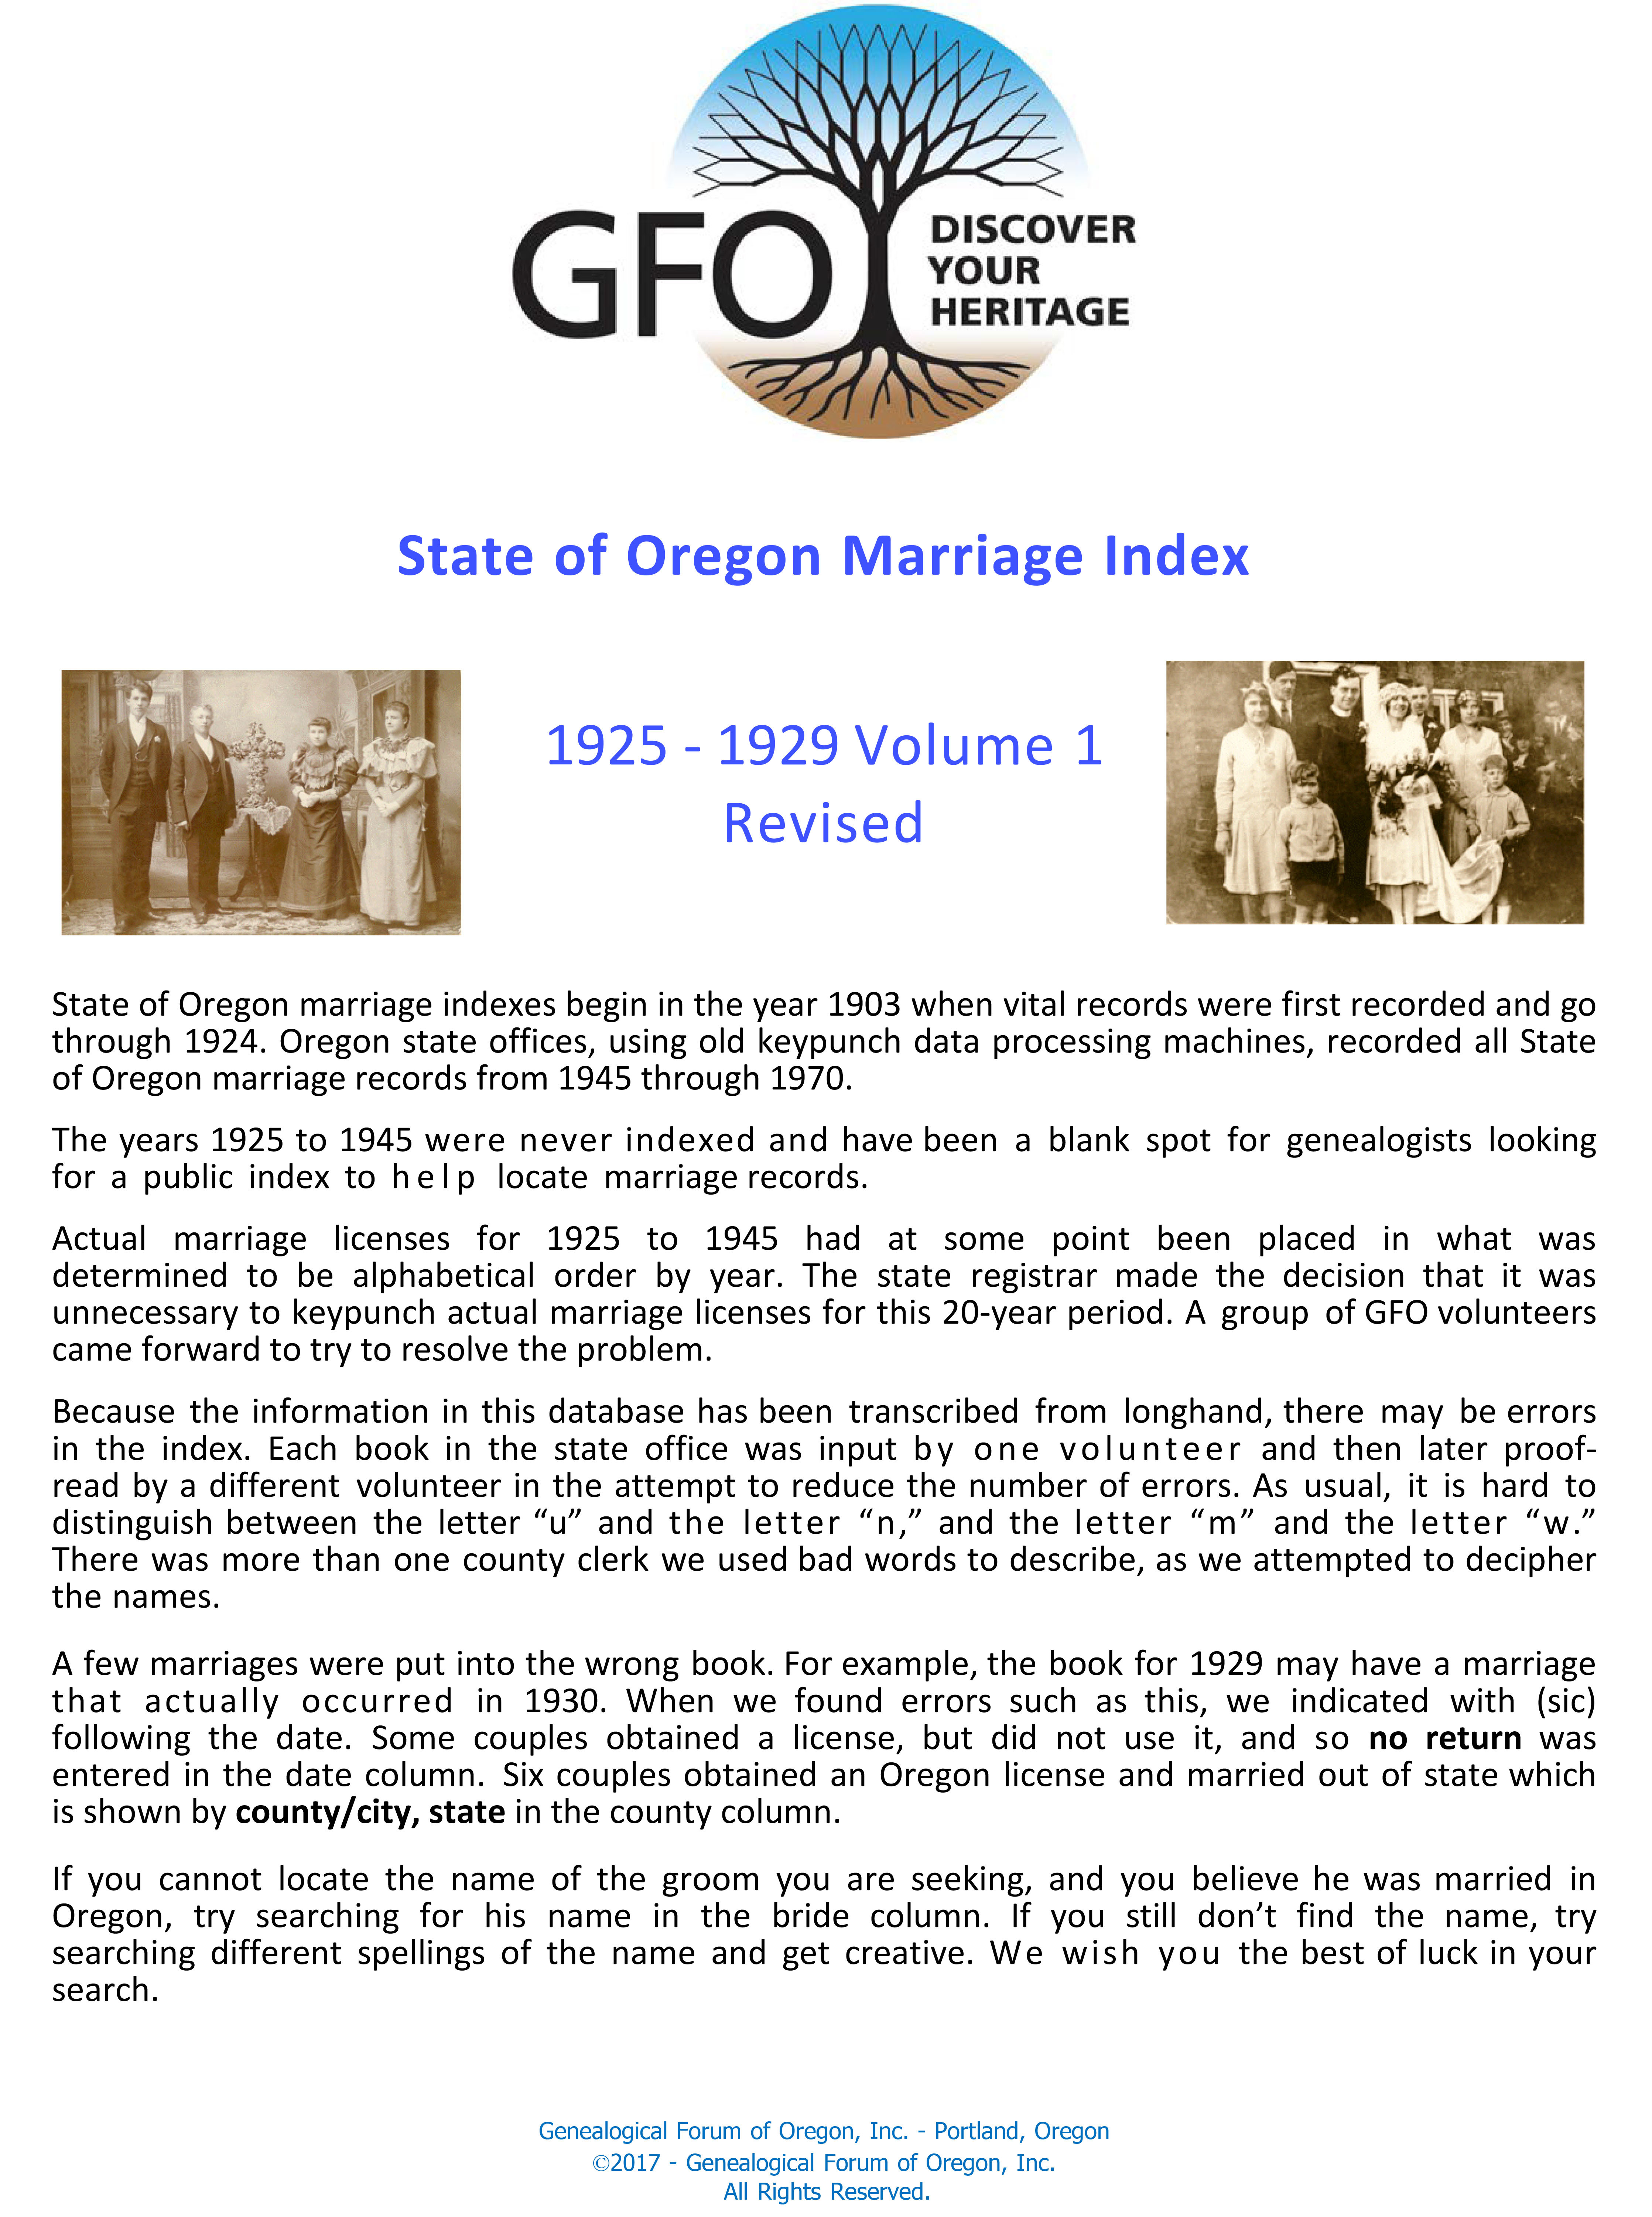 State of Oregon Marriage Index, 1925-1945